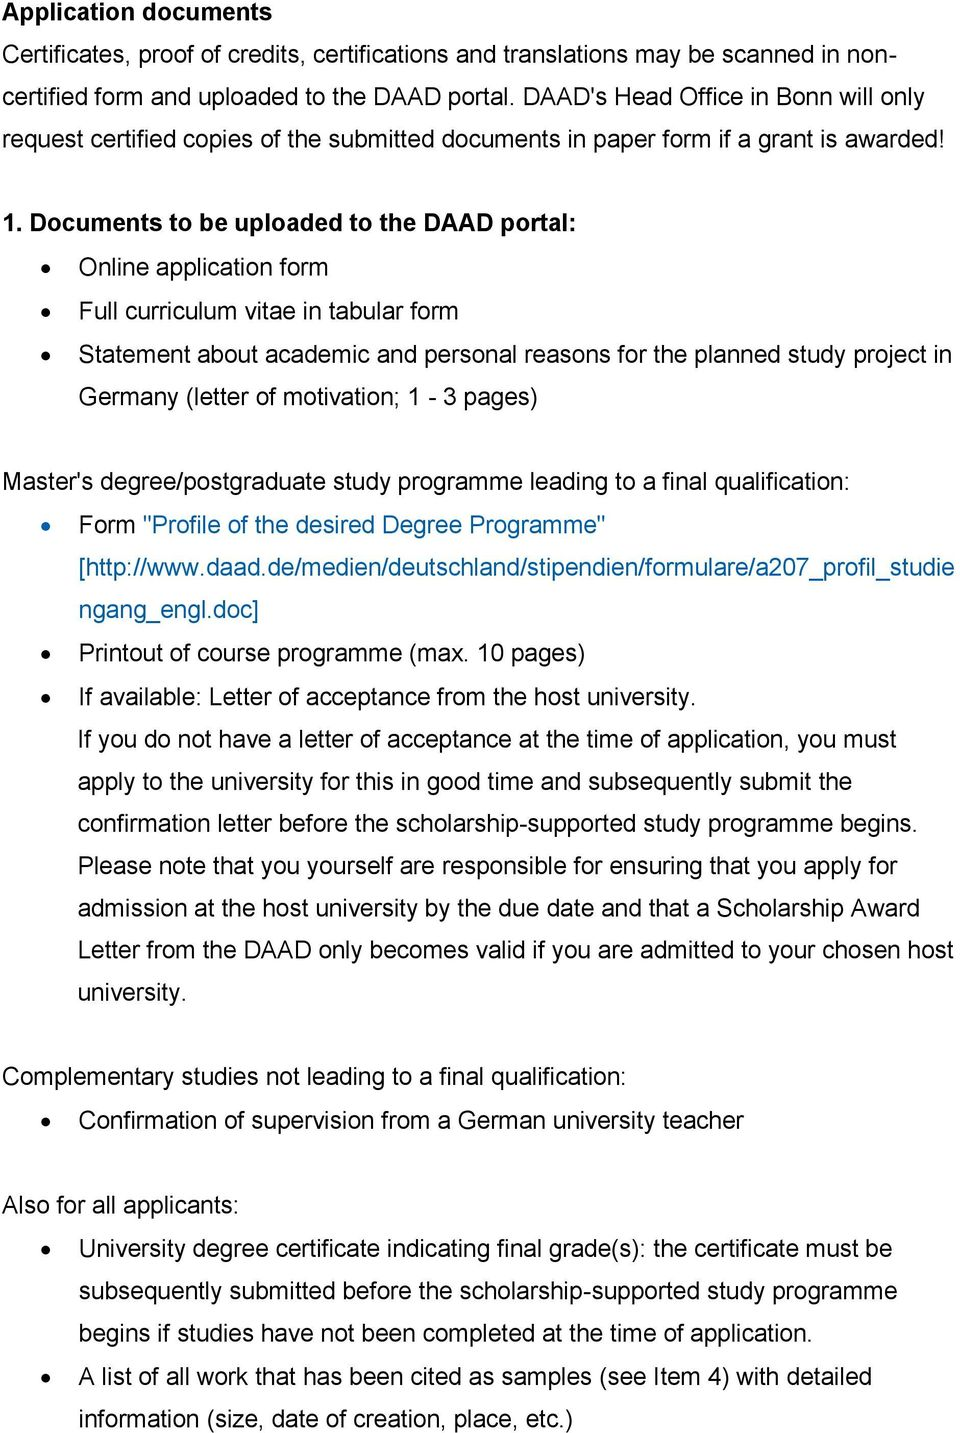 Documents to be uploaded to the DAAD portal: Online application form Full curriculum vitae in tabular form Statement about academic and personal reasons for the planned study project in Germany